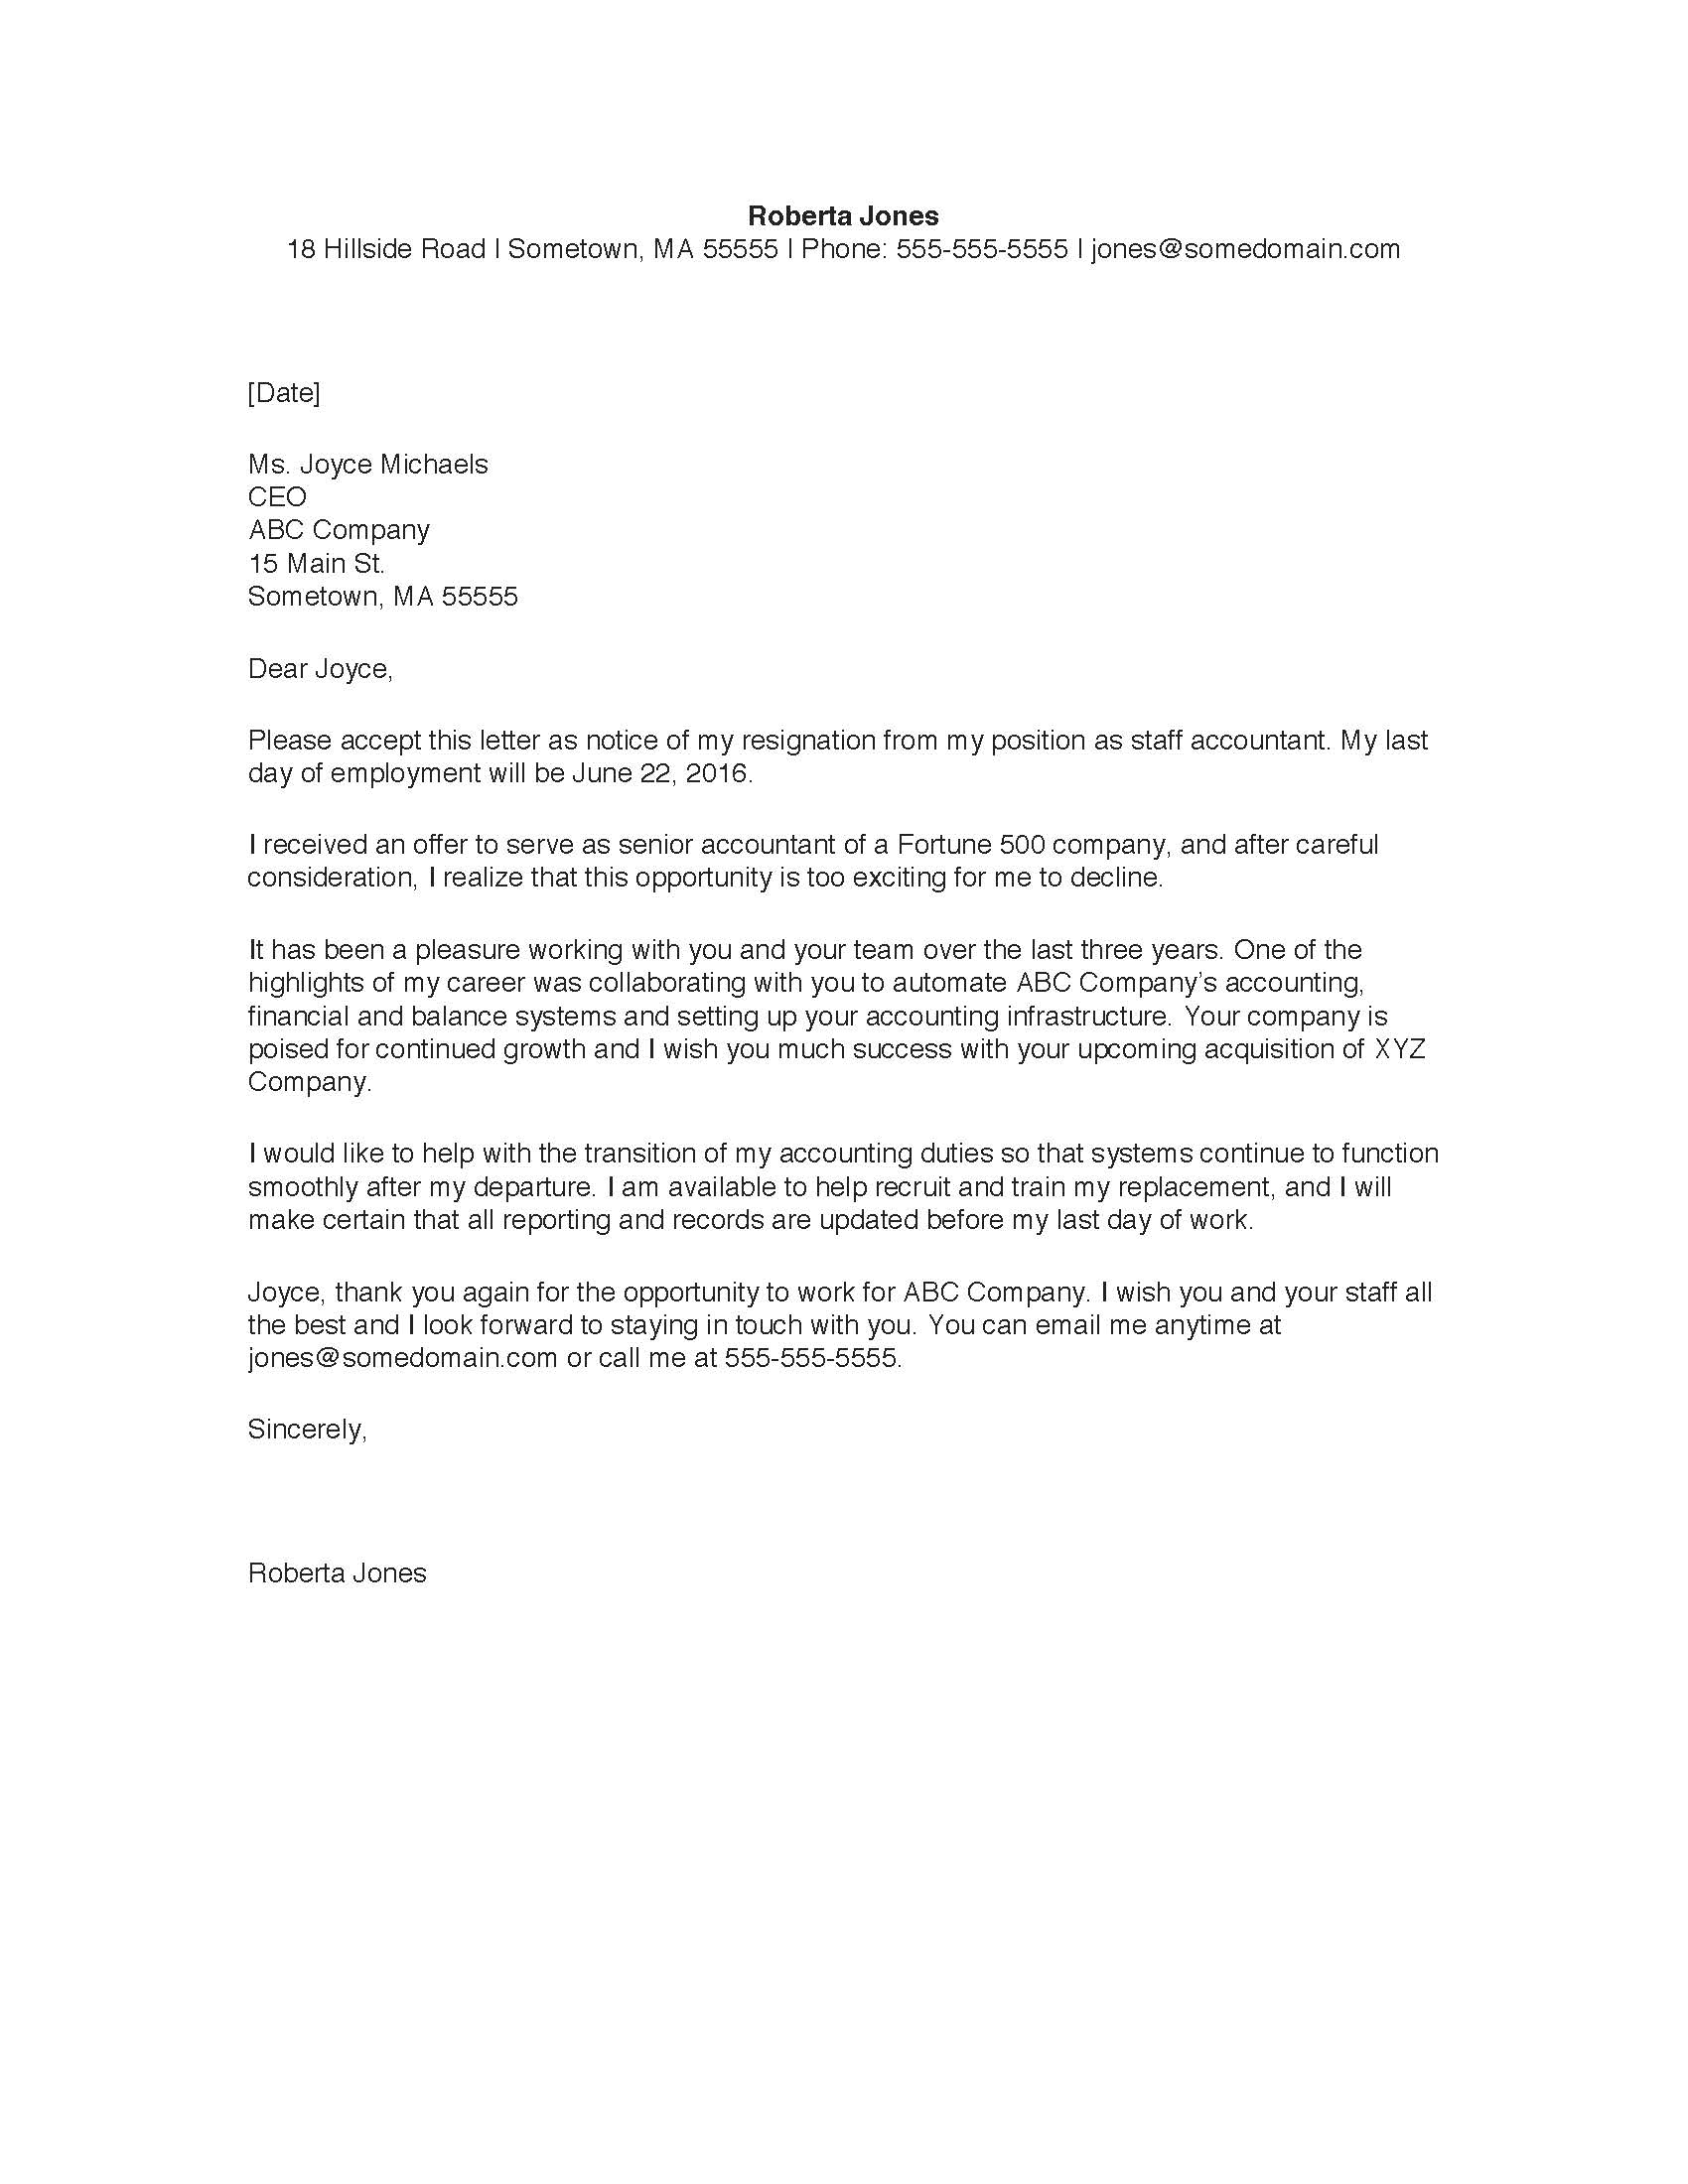 Marvelous Sample Resignation Letter